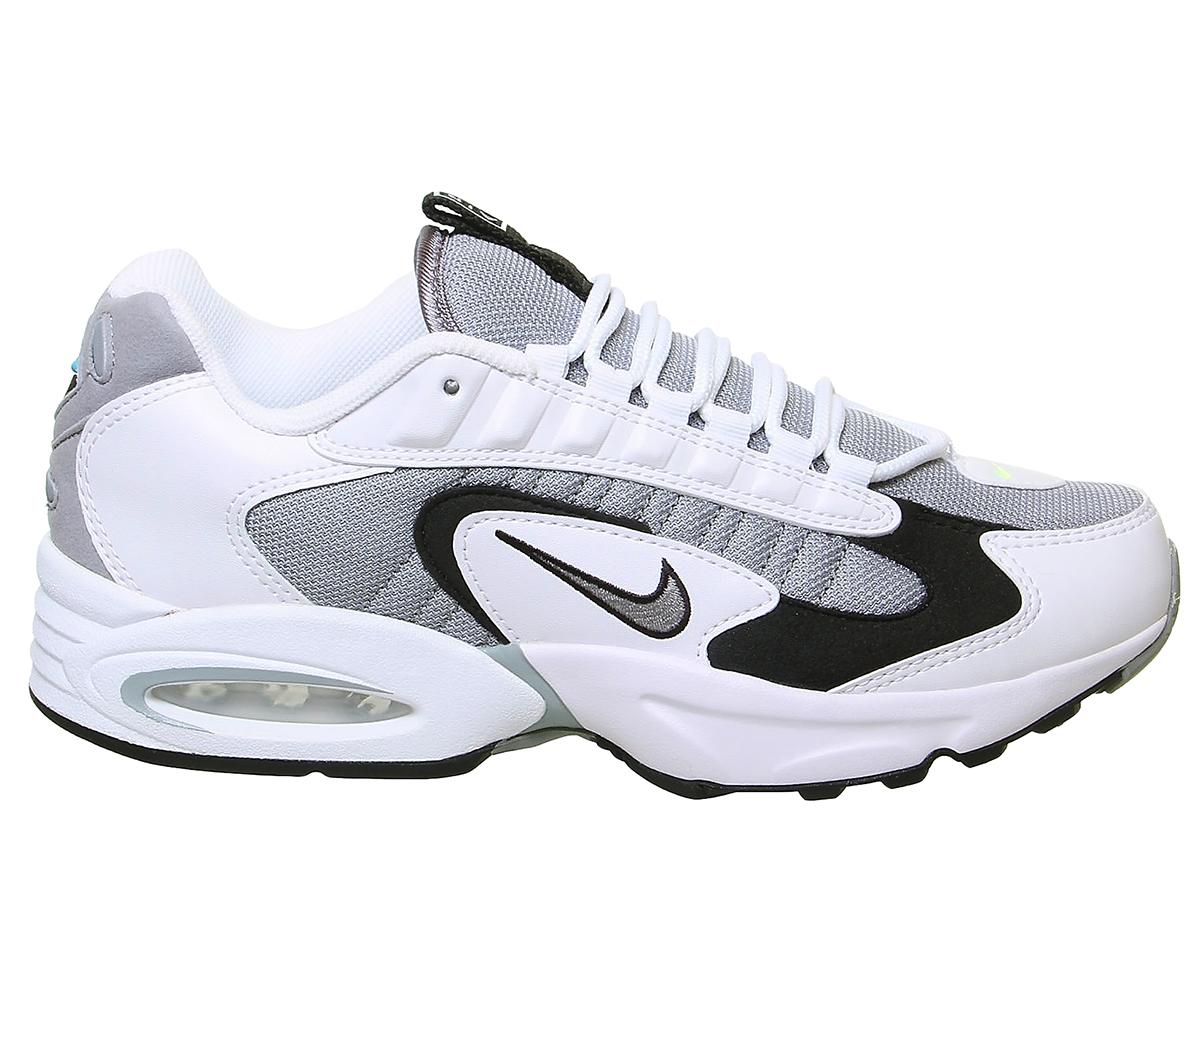 Nike Air Max Triax Trainers Trainers Unisex White Particle Grey Black Volt 1498614831